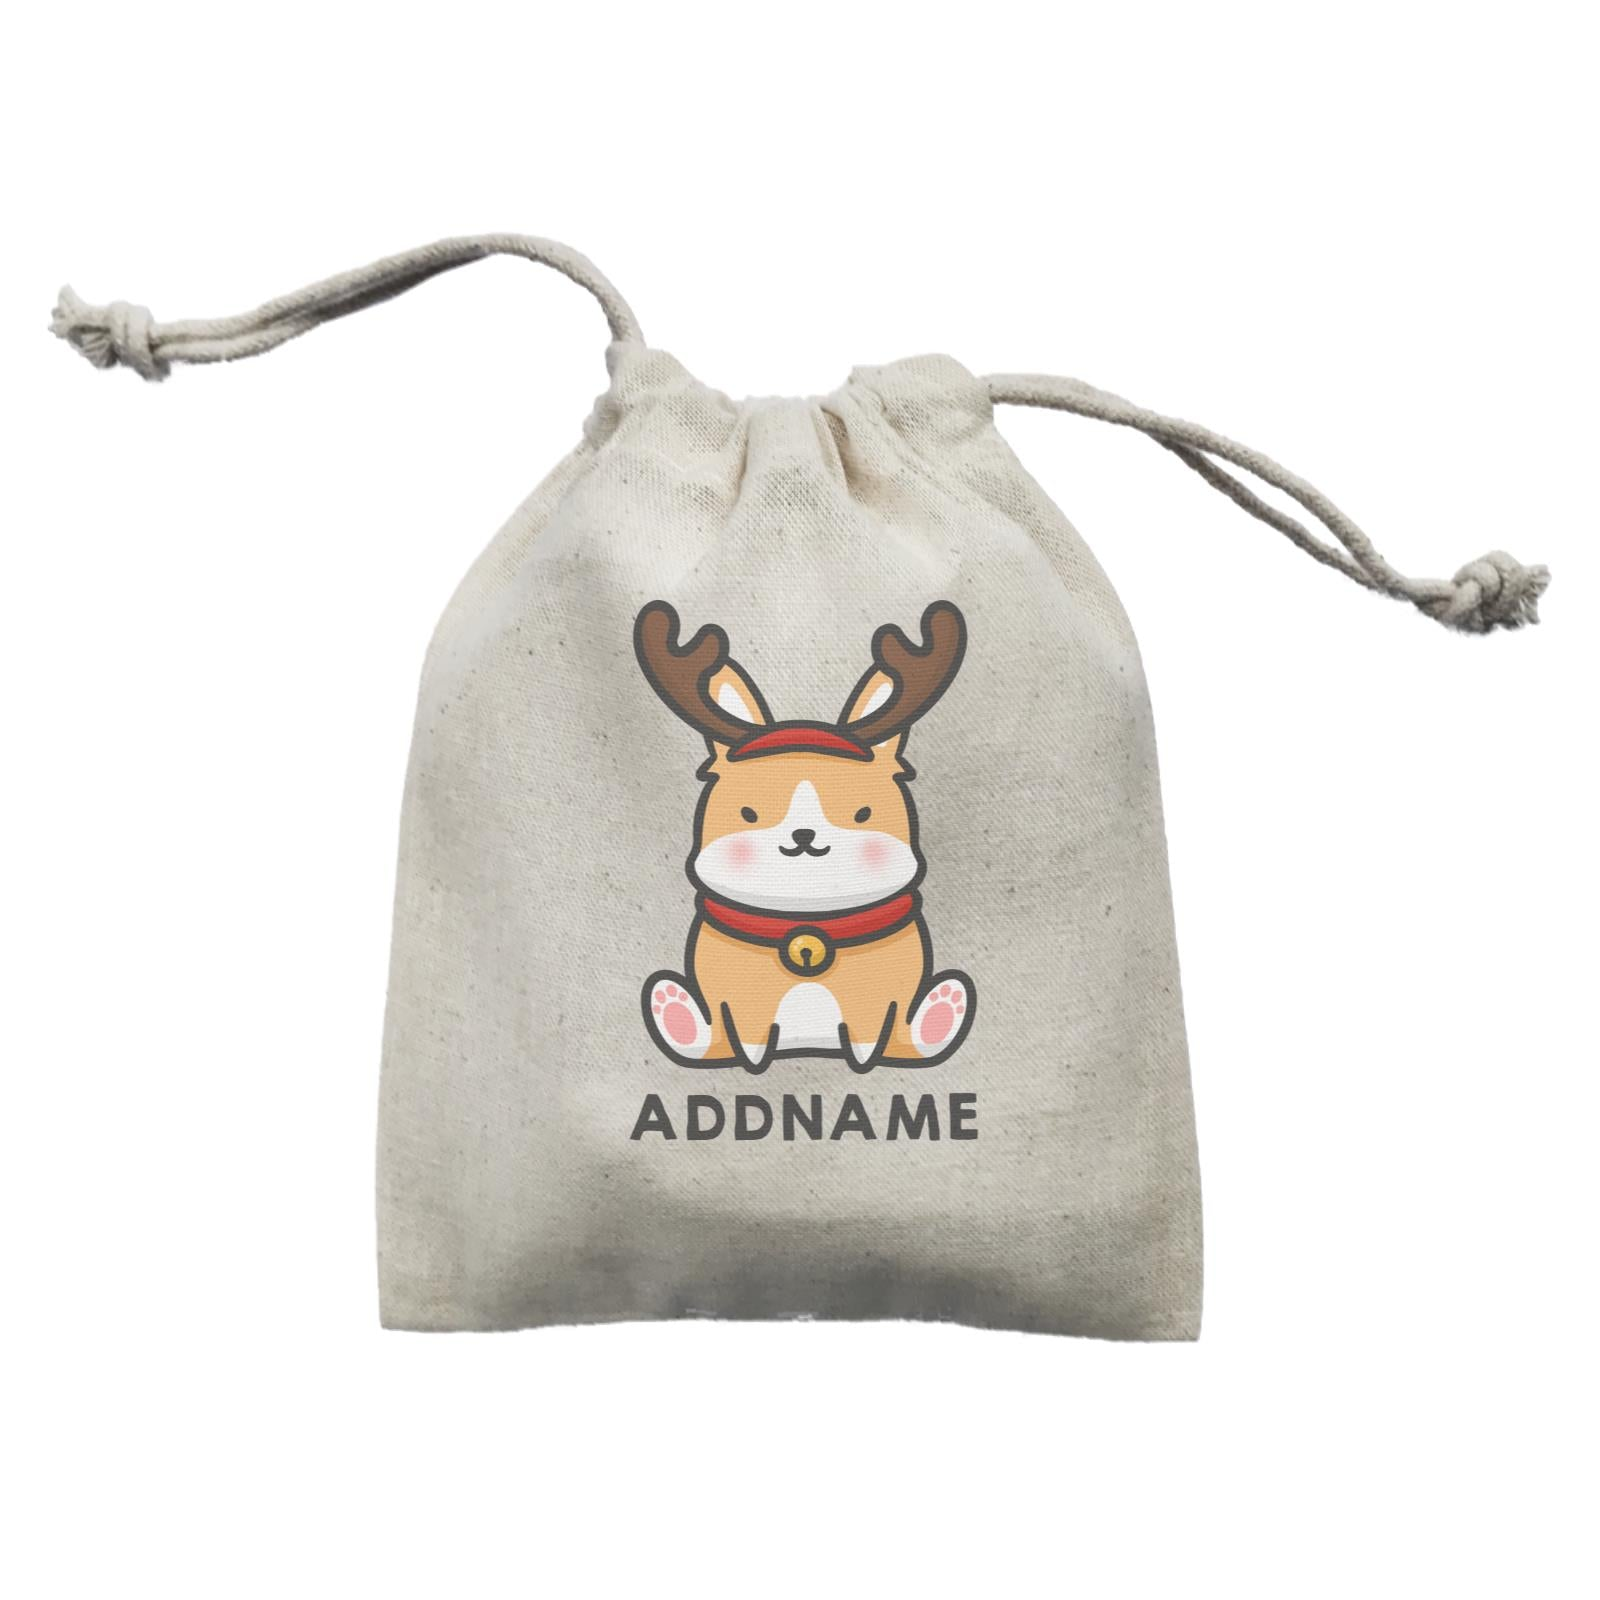 Xmas Cute Dog With Reindeer Antlers Addname Mini Accessories Mini Pouch